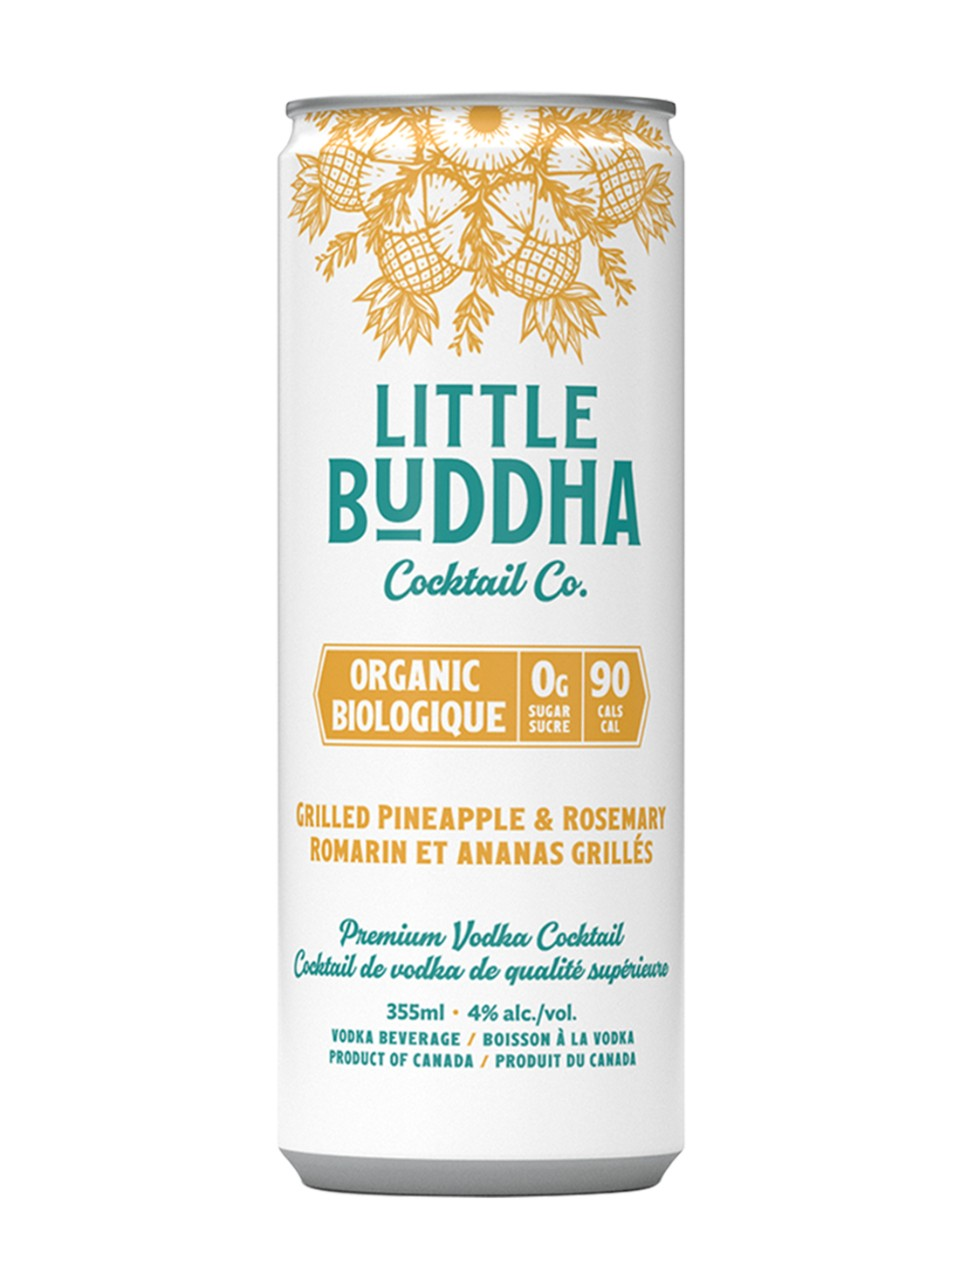 Image for Little Buddha Cc Grilled Pineapple Rosemary-Vodka from LCBO